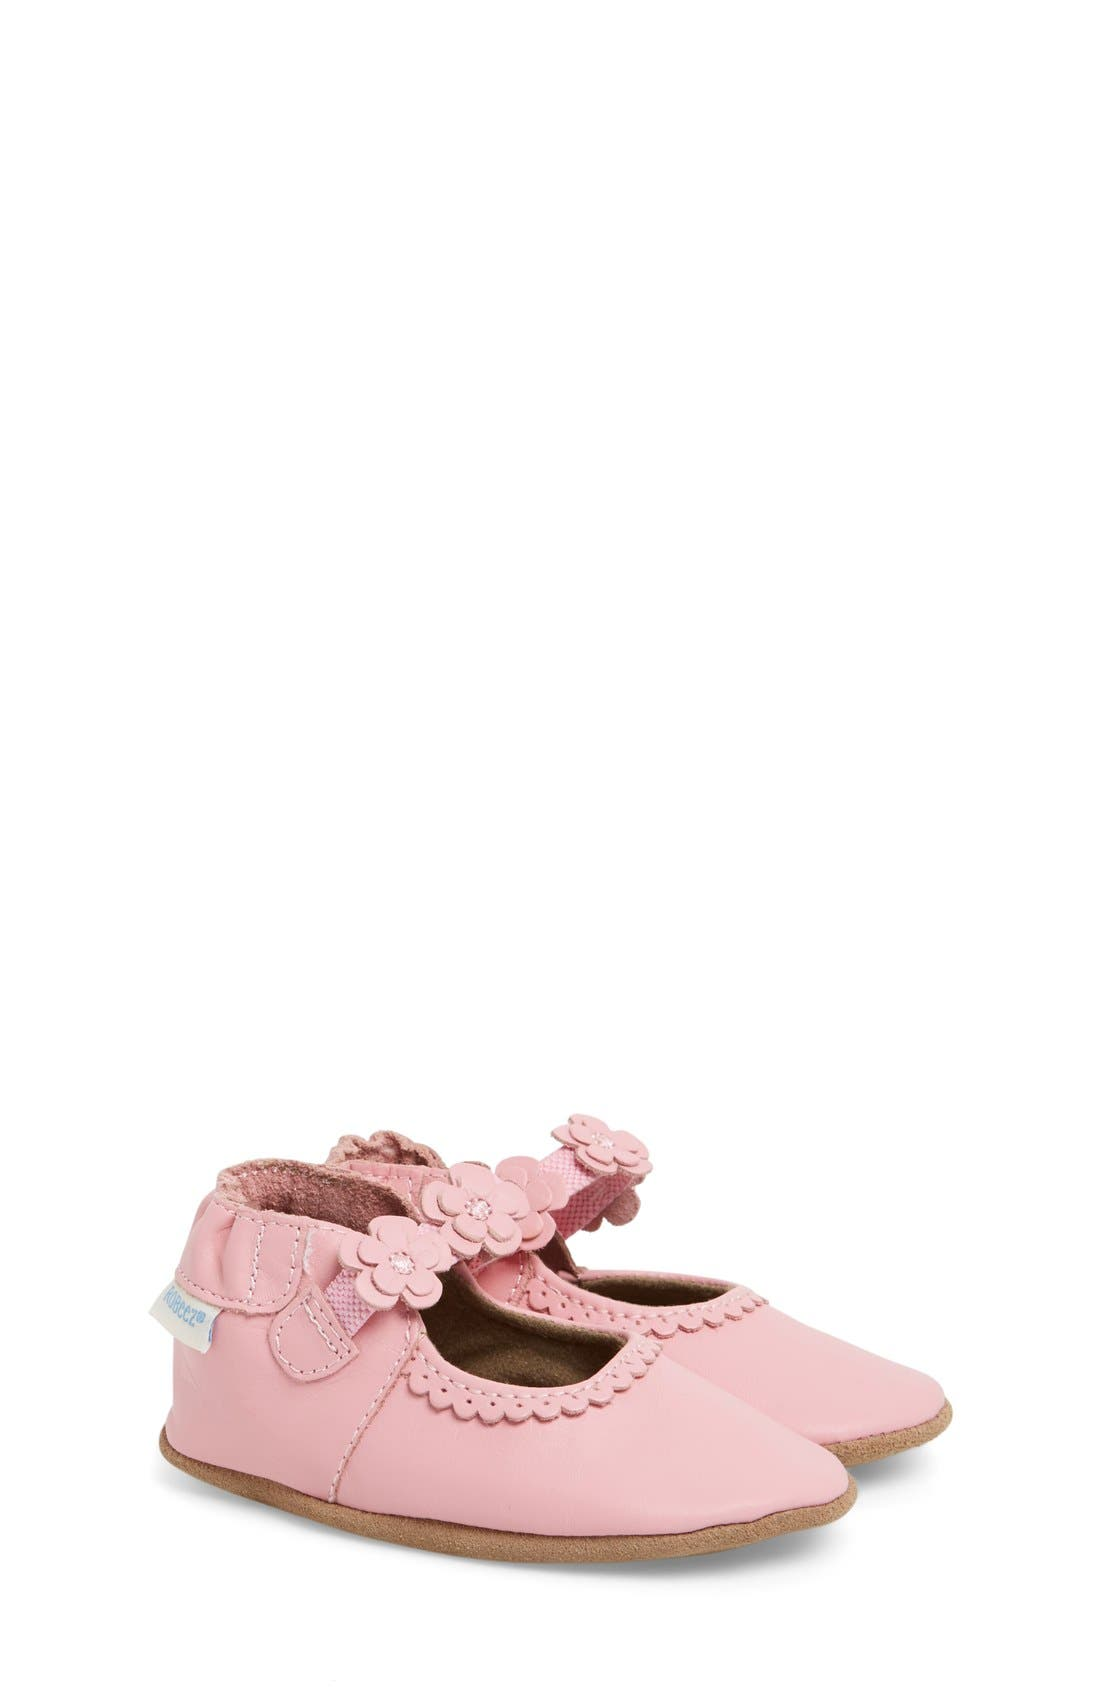 'Claire' Mary Jane Crib Shoe,                         Main,                         color, PRISM PINK